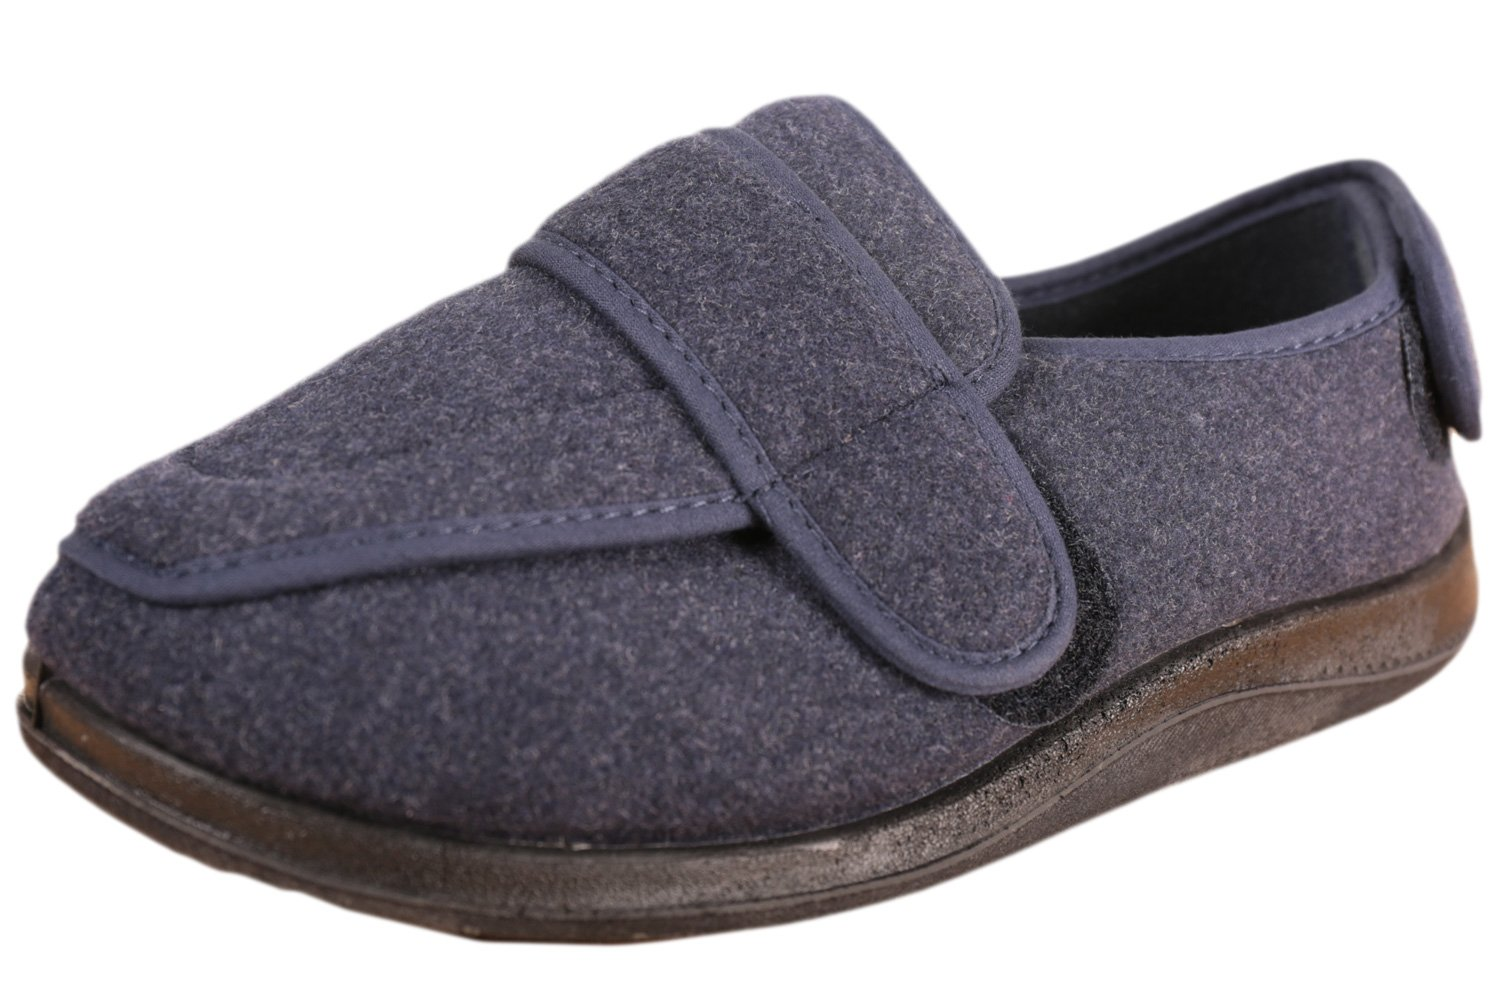 Foamtreads Men's Extra-Depth Wool Slippers Physician